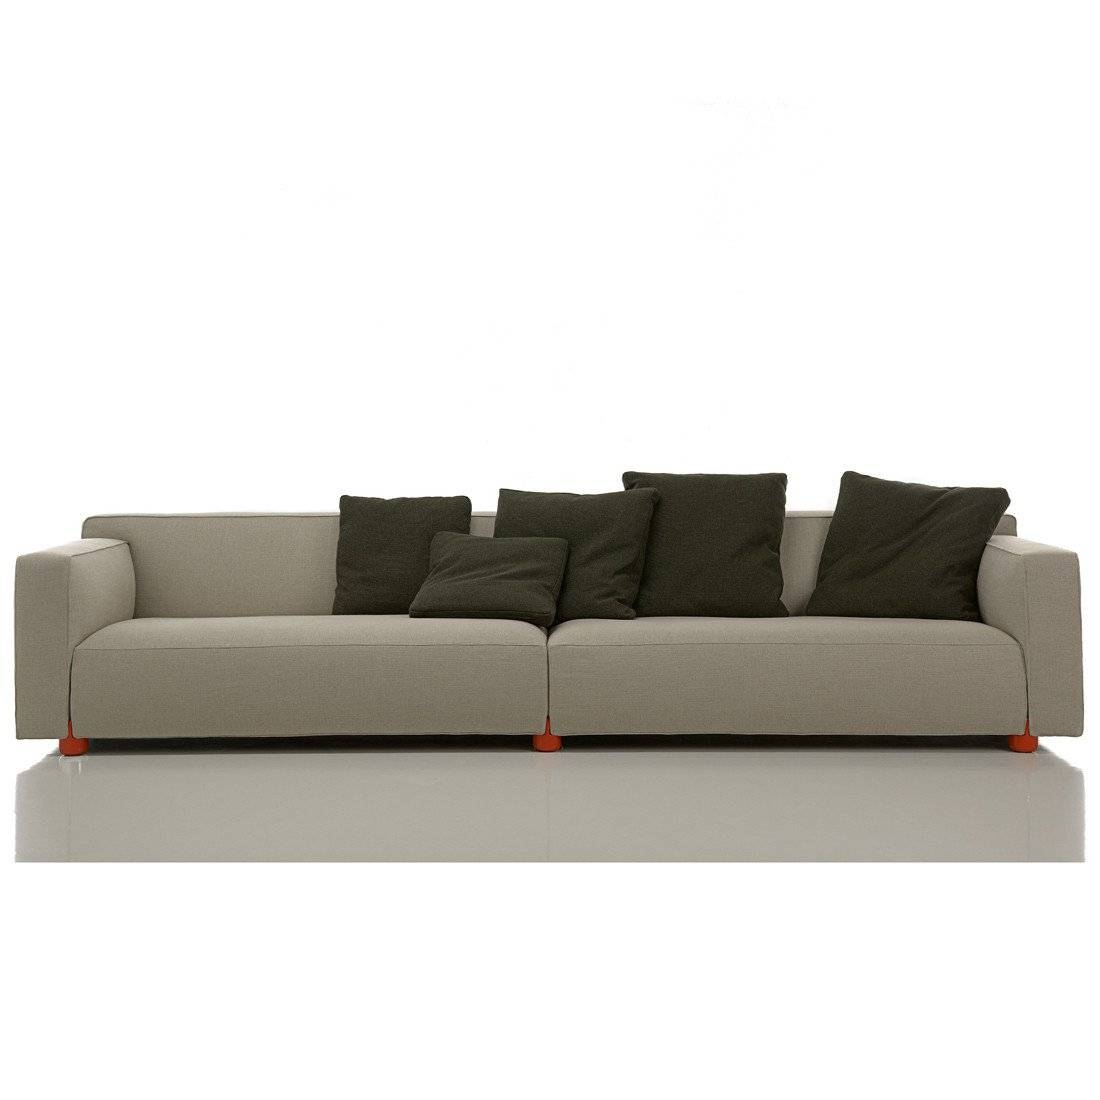 Barber Osgerby 4 Seater Sofaedward Barber And Jay Osgerby — Haus® with regard to Four Seat Sofas (Image 8 of 30)